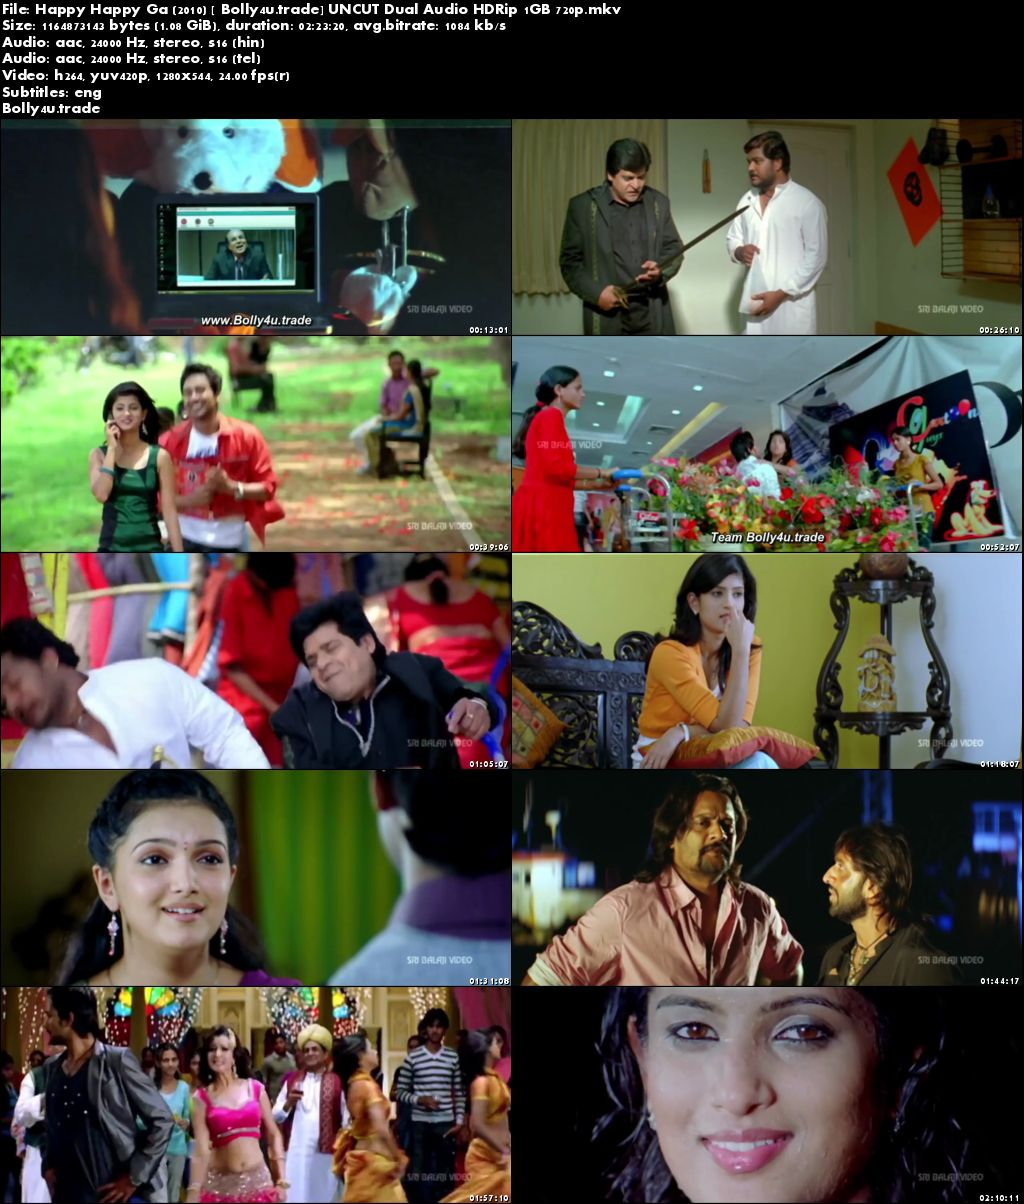 Happy Happy Ga 2010 HDRip 450Mb Hindi UNCUT Dual Audio 480p Download